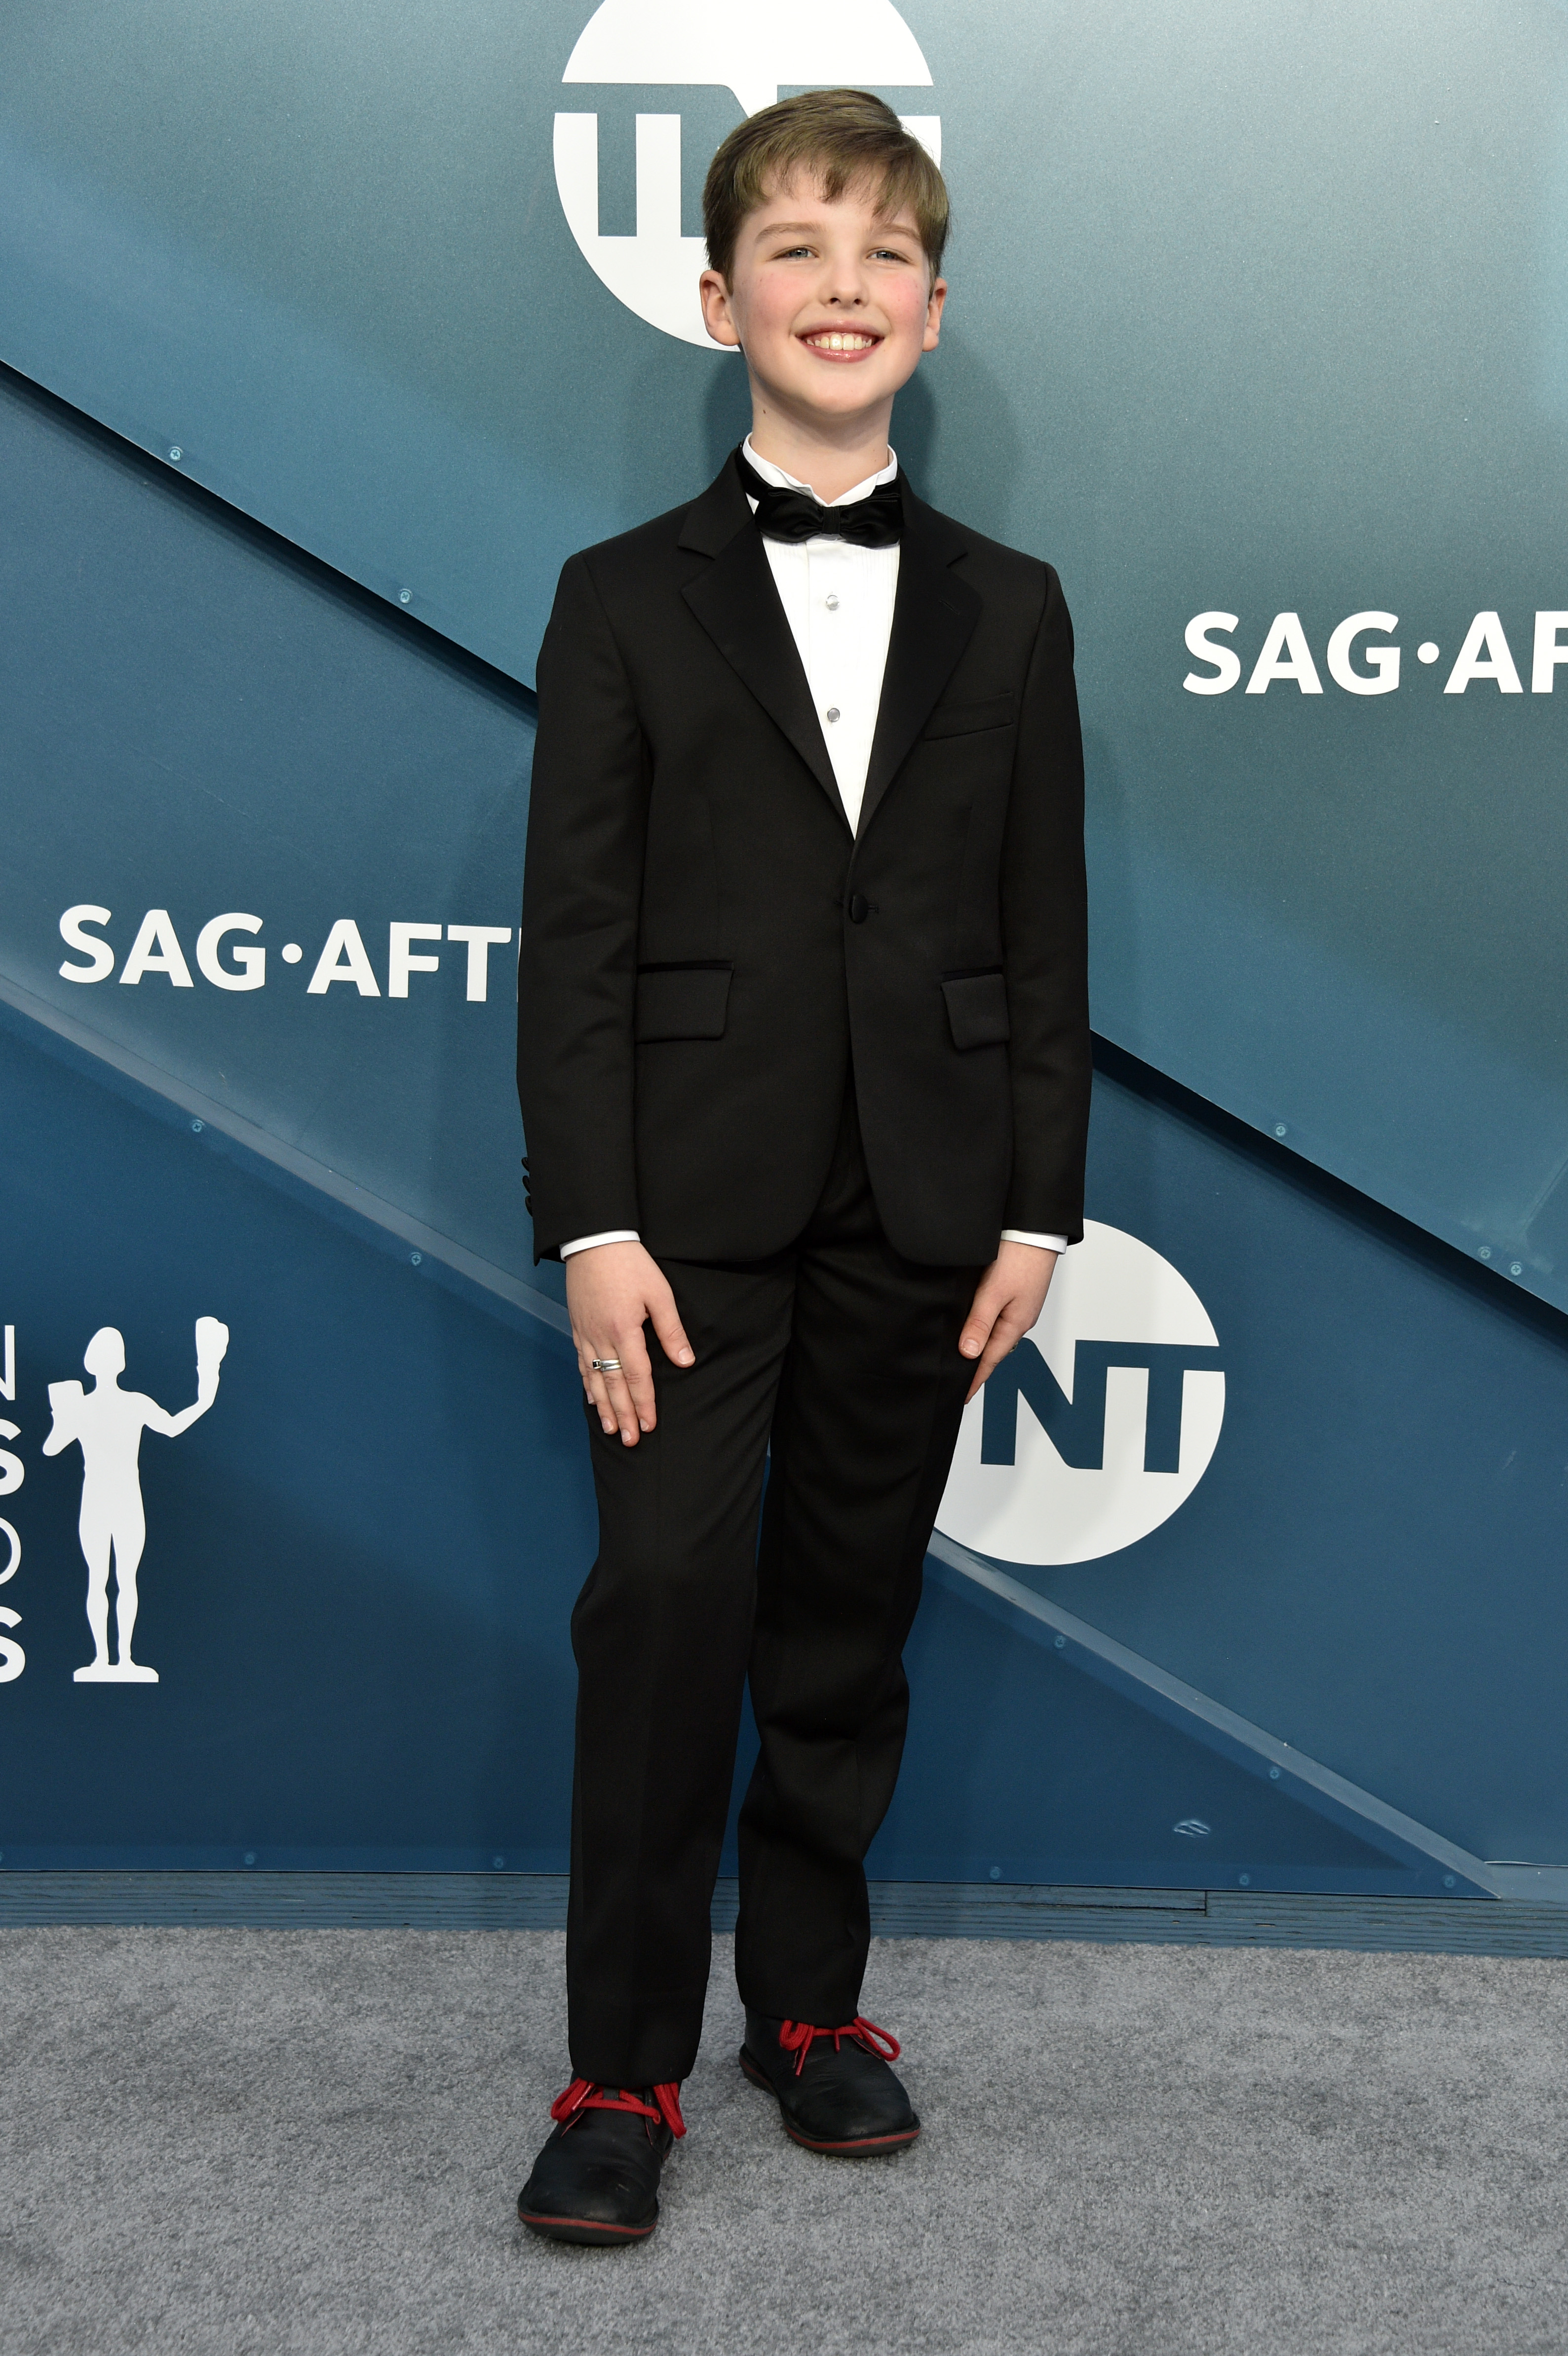 LOS ANGELES, CALIFORNIA - JANUARY 19: Iain Armitage attends the 26th Annual Screen ActorsGuild Awards at The Shrine Auditorium on January 19, 2020 in Los Angeles, California. 721430 (Photo by Gregg DeGuire/Getty Images for Turner)